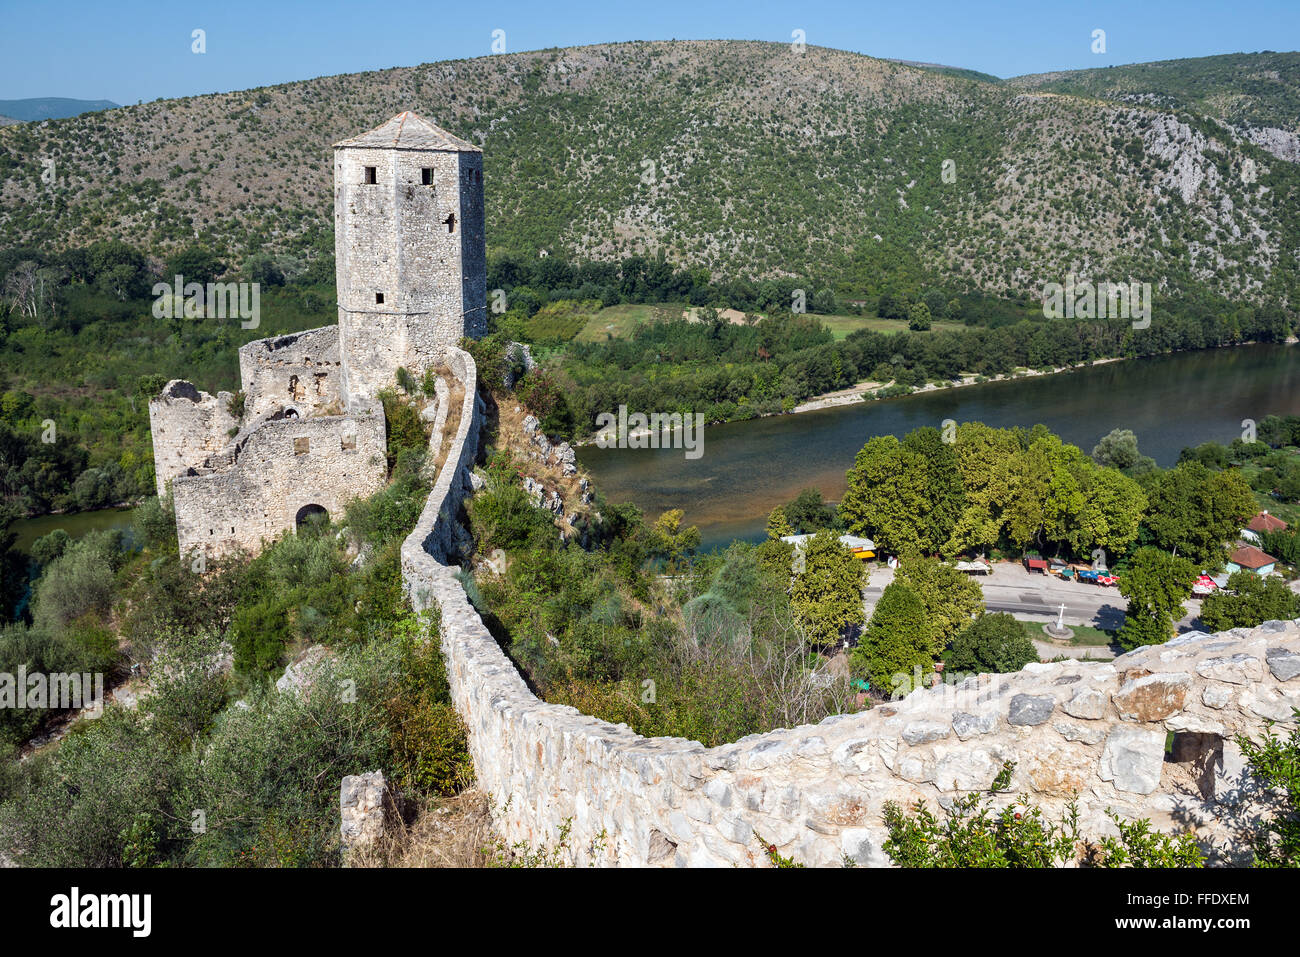 medieval citadel built by King Tvrtko I of Bosnia in 1383 in Pocitelj  village over Neretva river, Bosnia and Herzegovina